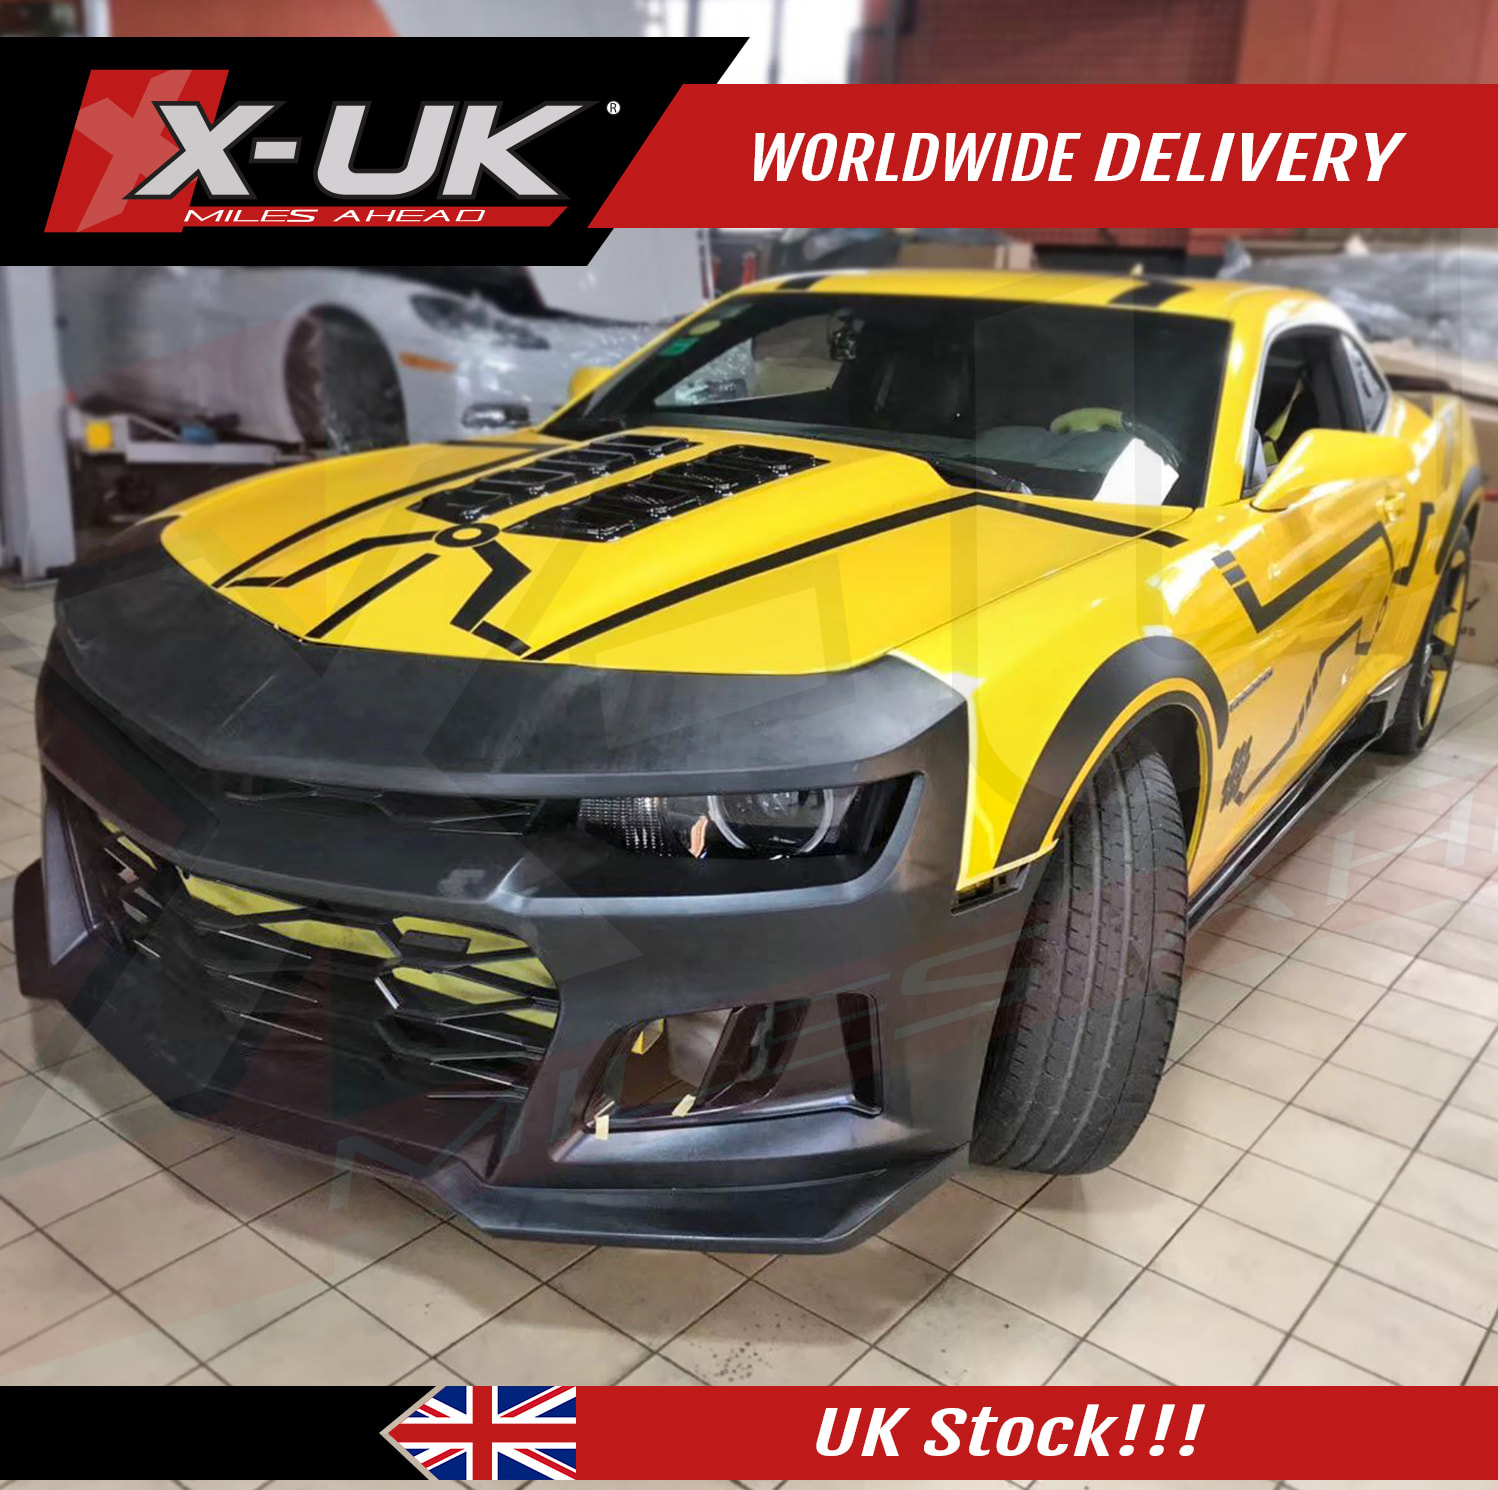 Zl1 Style Front Bumper Upgrade For Chevrolet Camaro 2010 2015